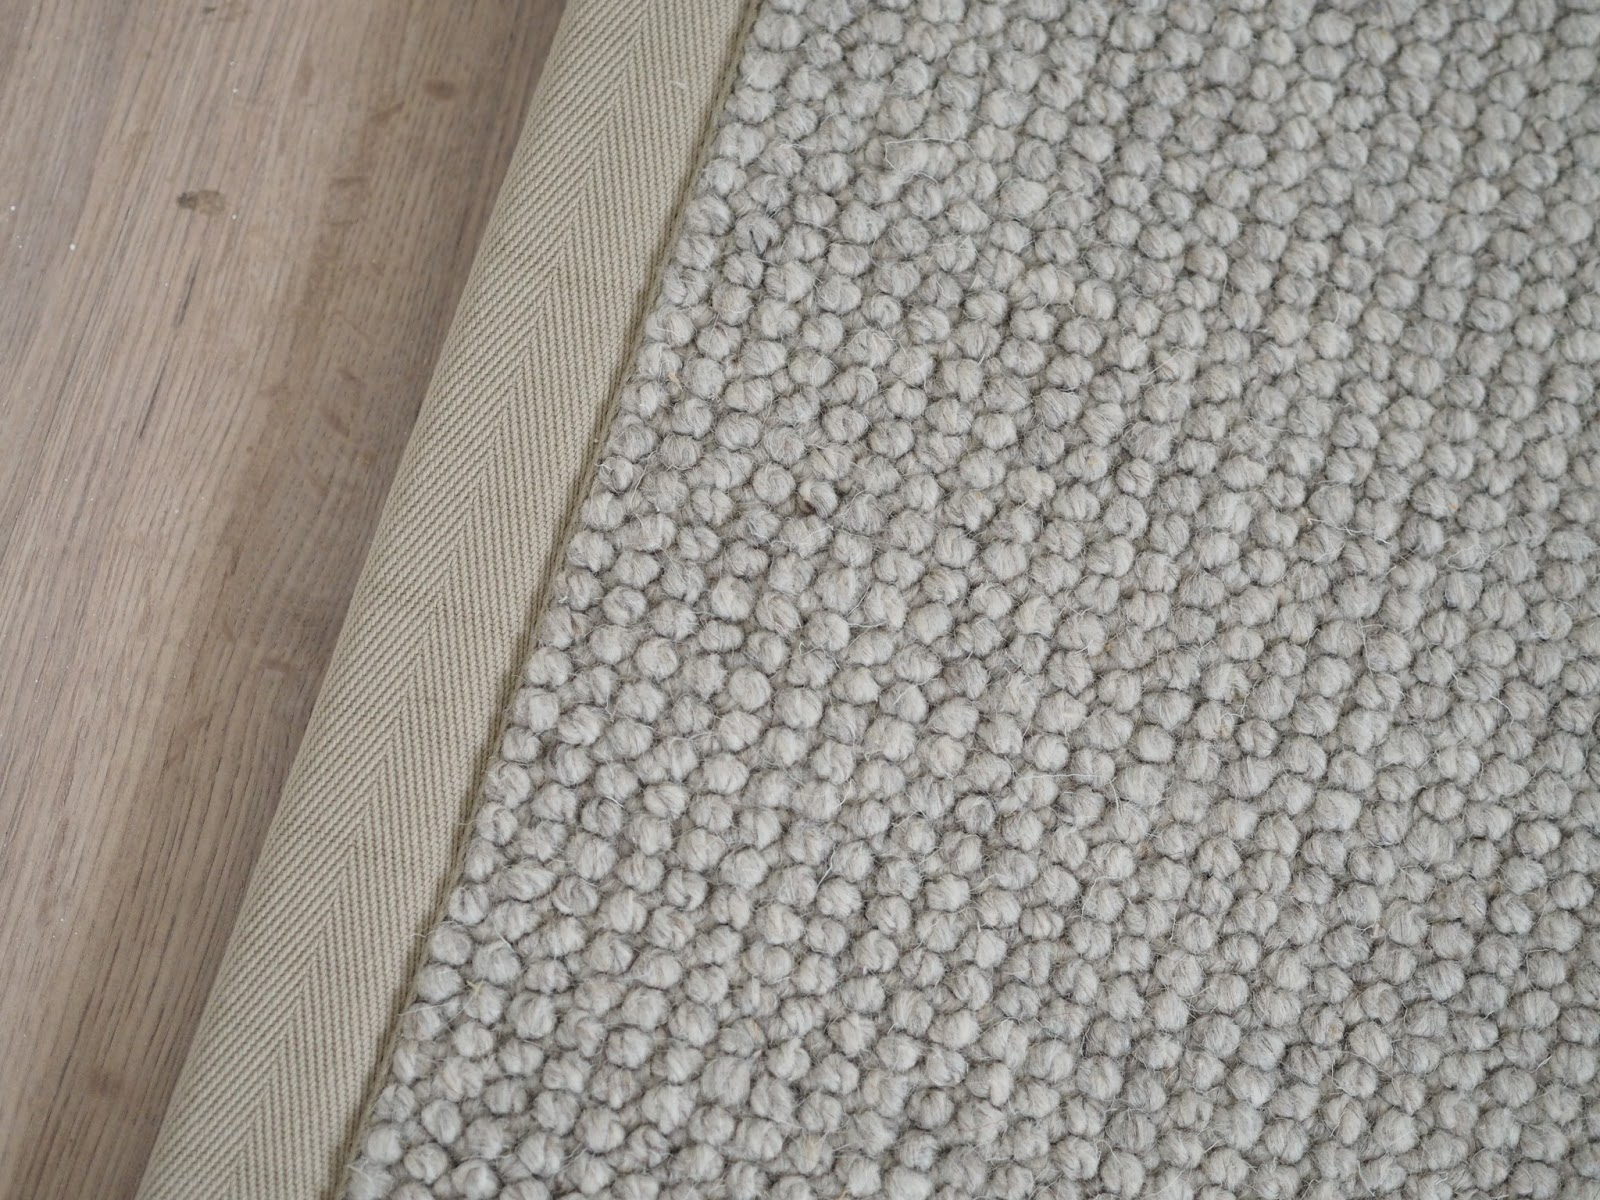 How to choose the right rug for your home, including tips on choosing material, colour and size, as well as whether using a remnant or off-cut of carpet could be the right choice for you and your home